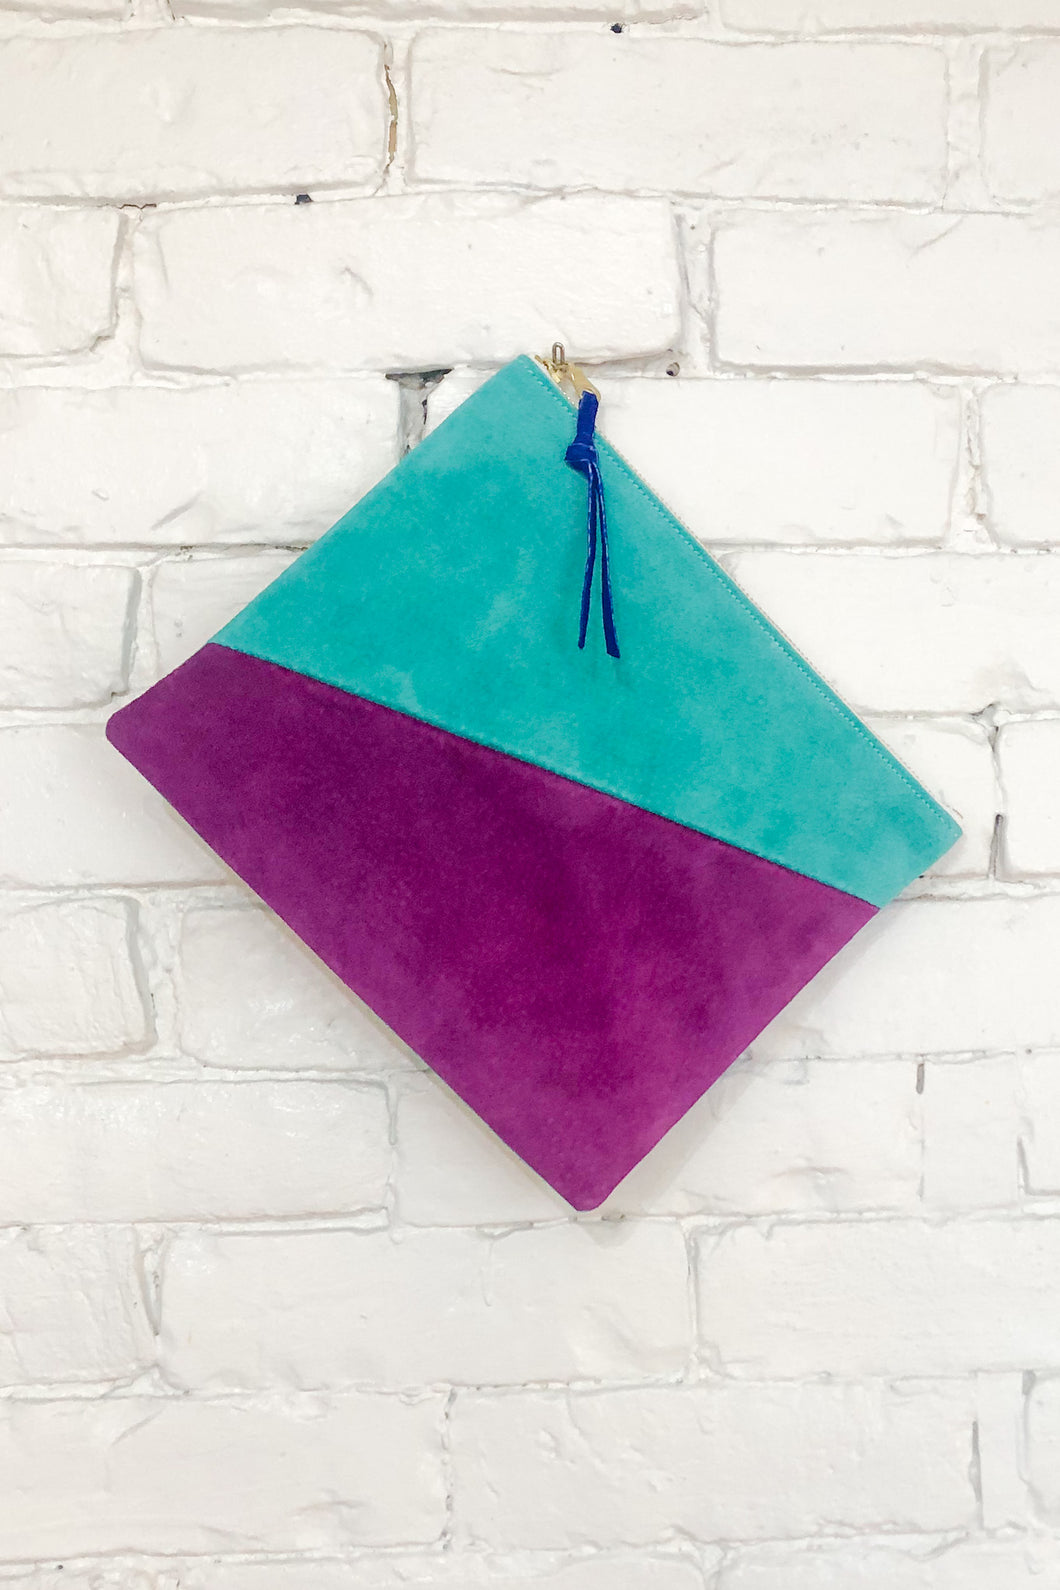 The Diagonal (Teal, Plum, and Sky)